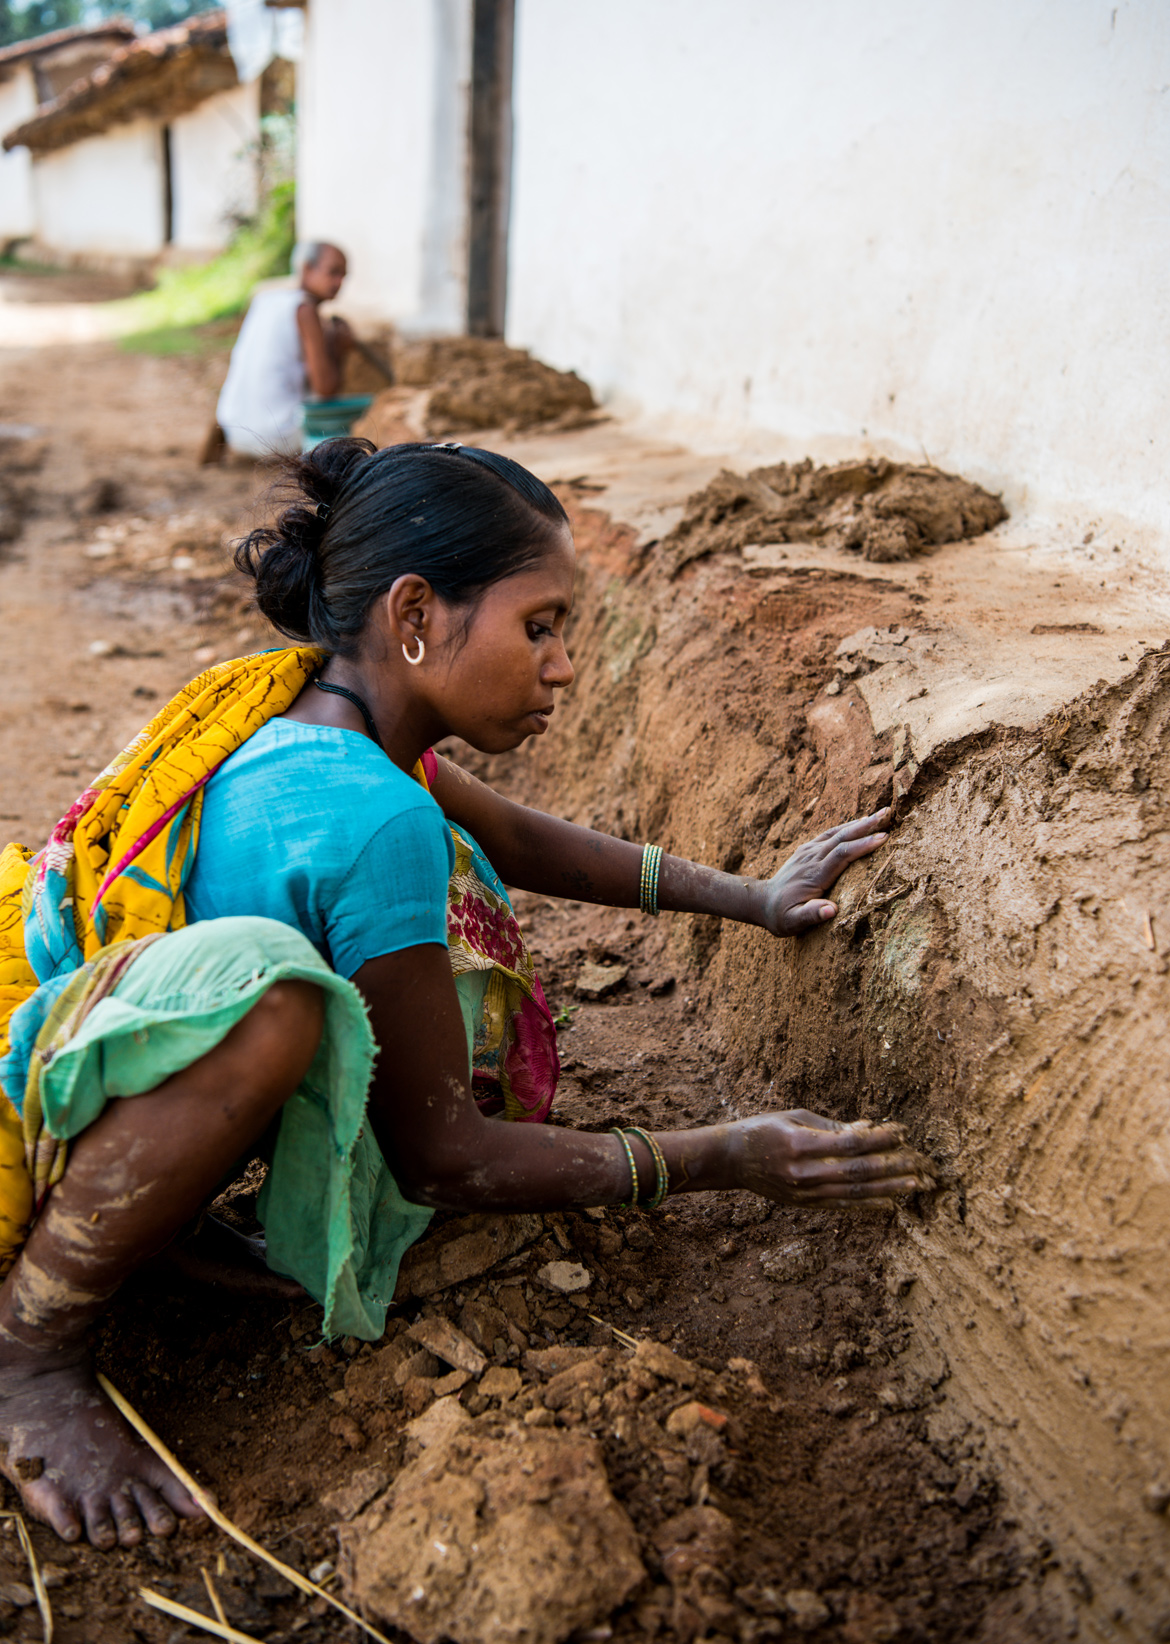 A woman reinforces mud onto the otla, or platform around her village home.